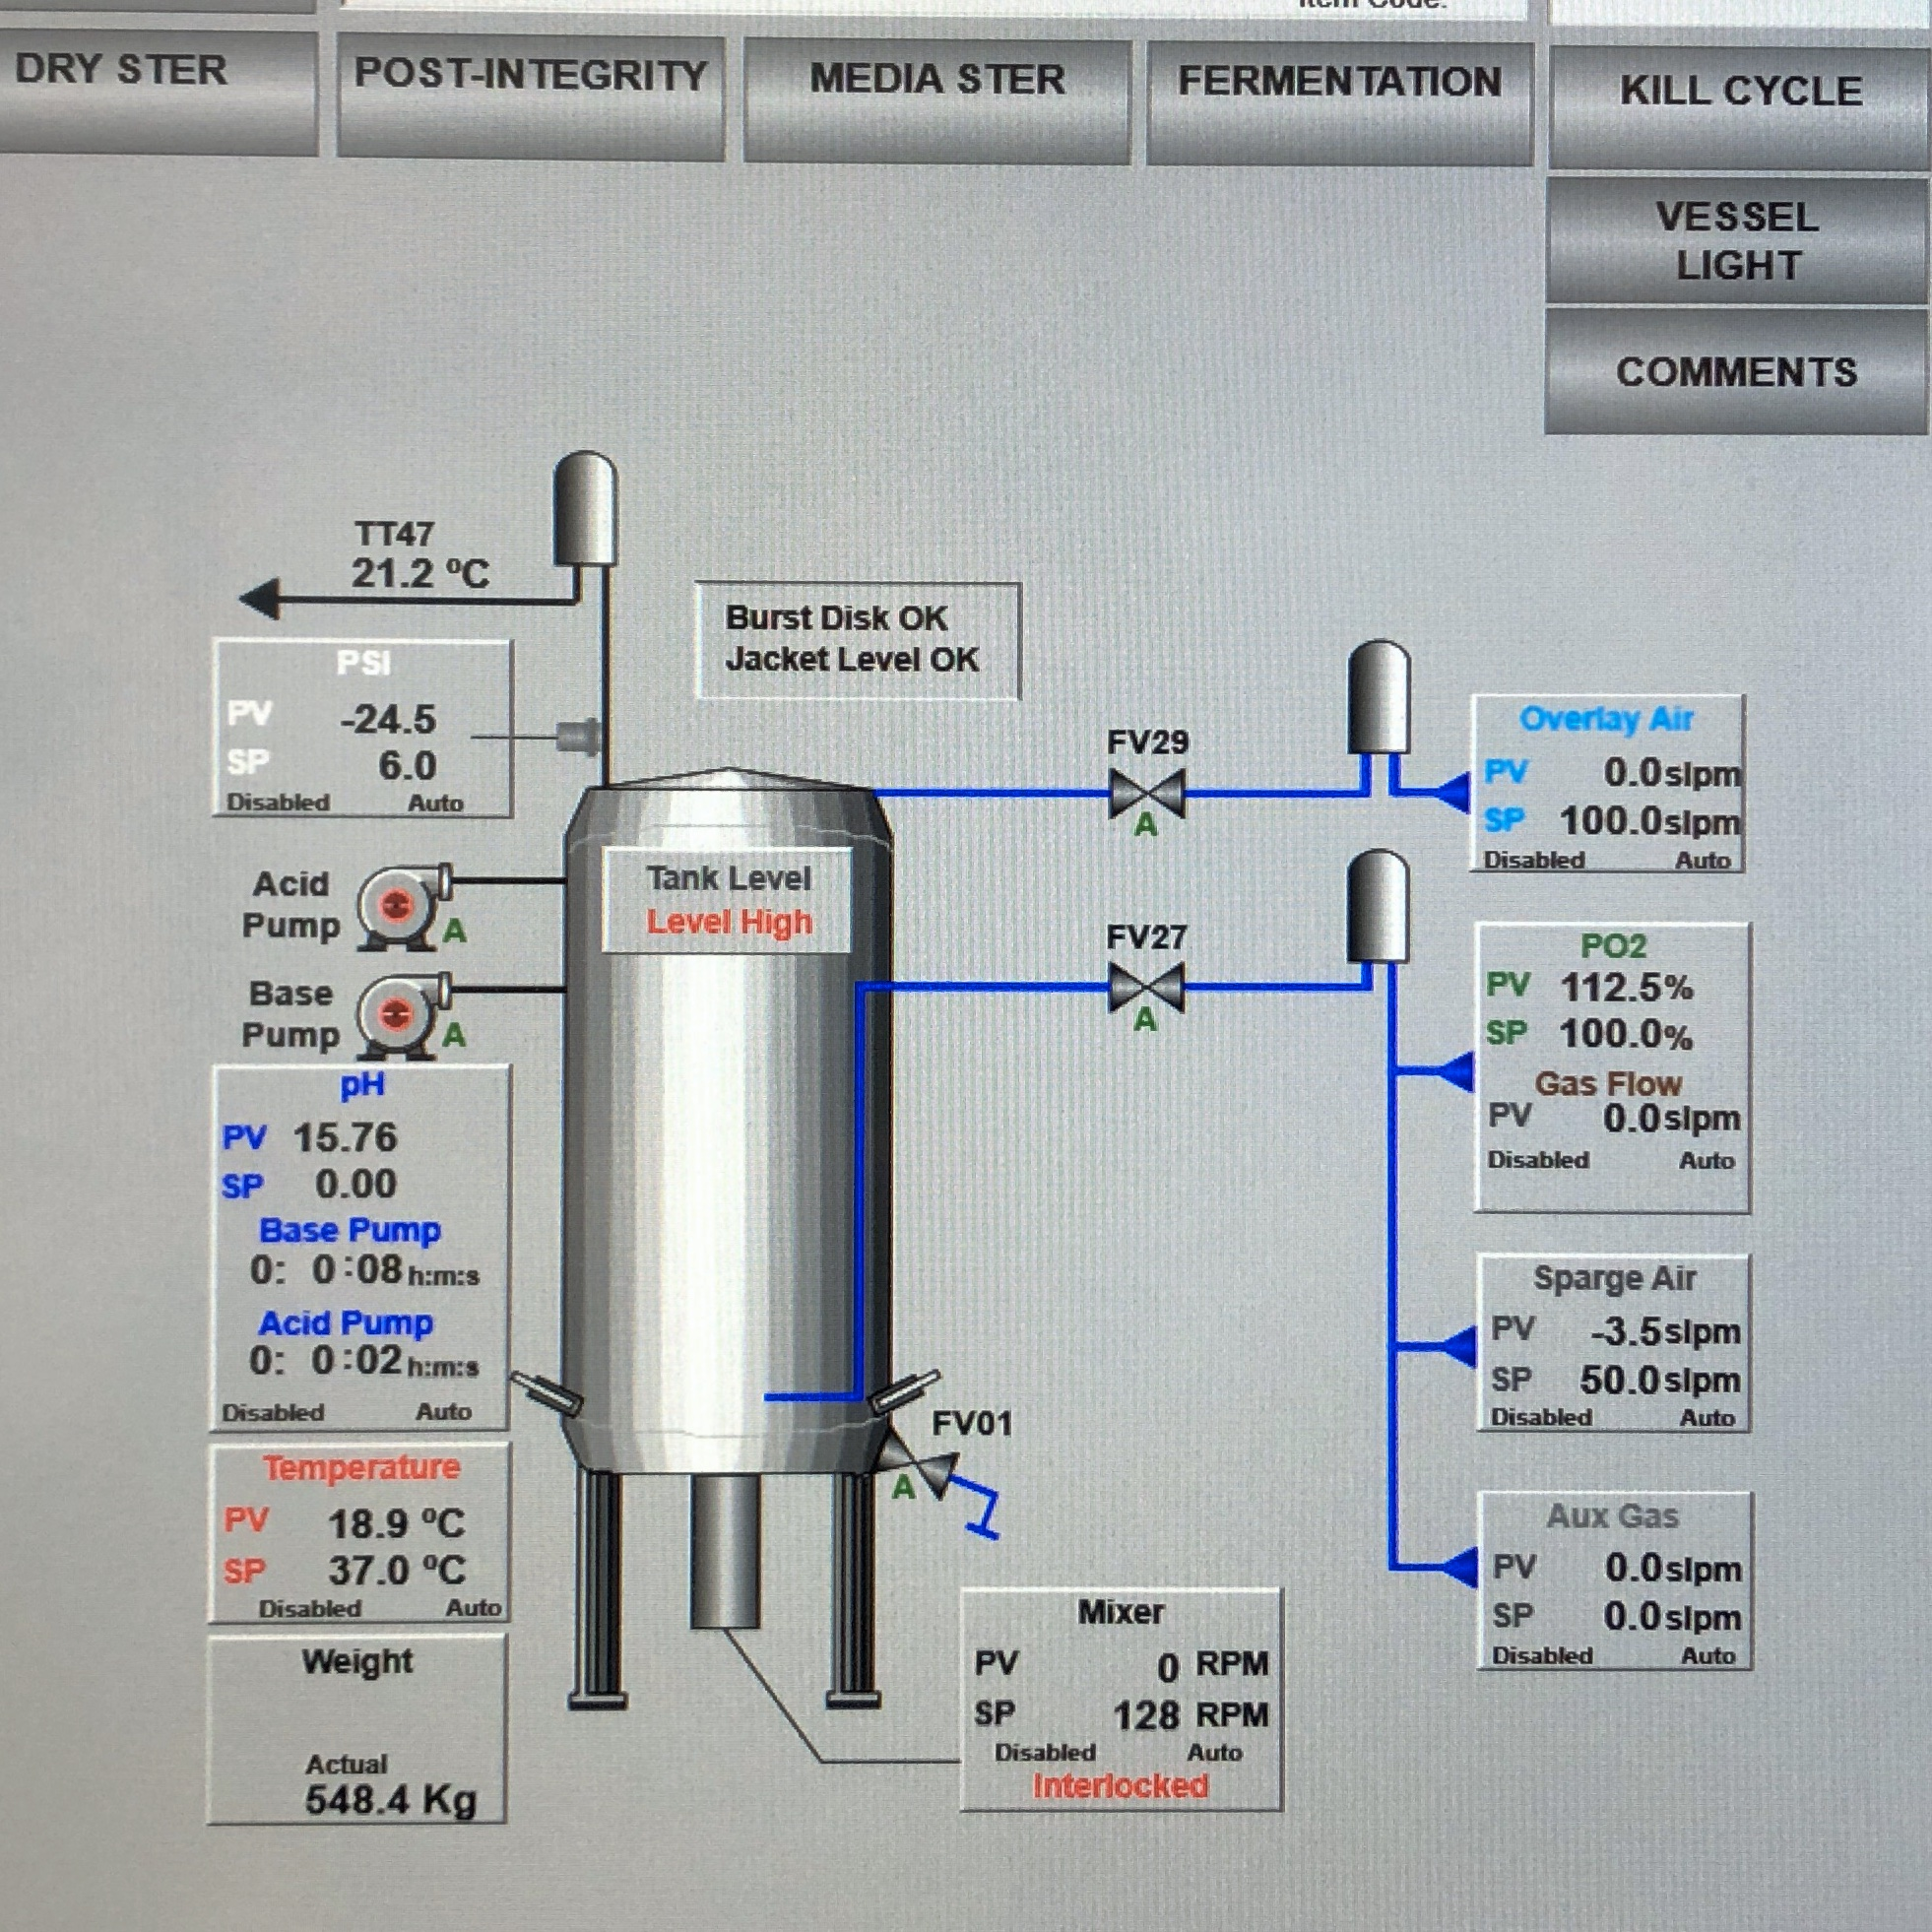 Fermenter HMI Screen